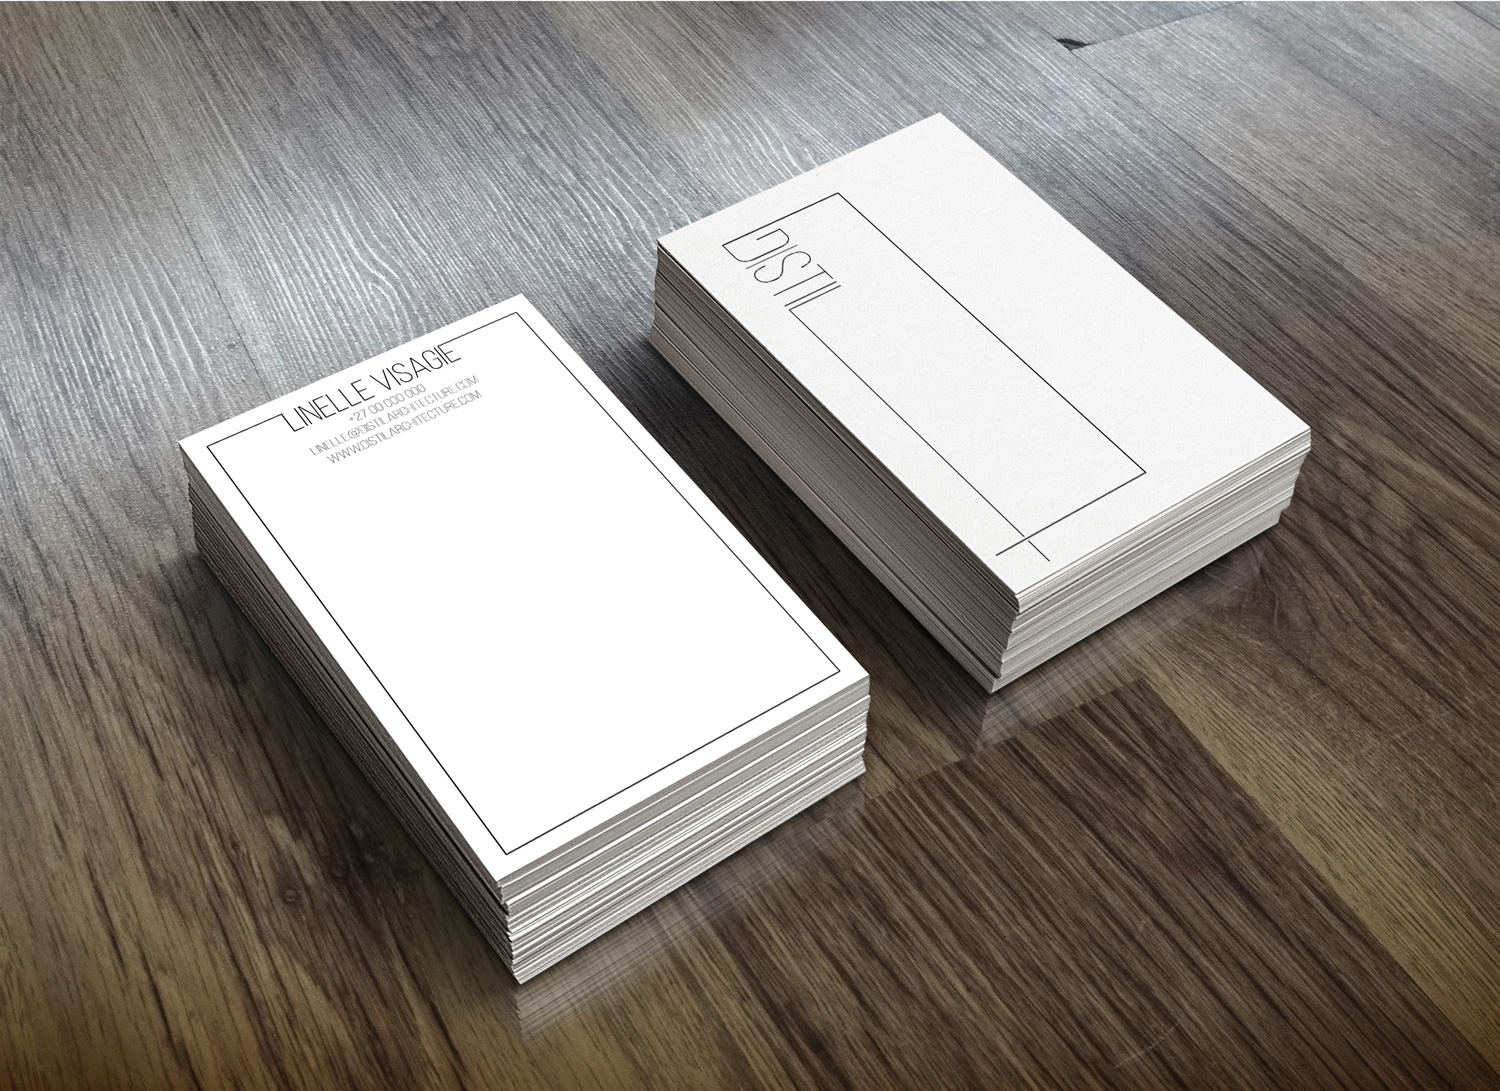 Realistic-Business-Card-Mock-Up-3.jpg